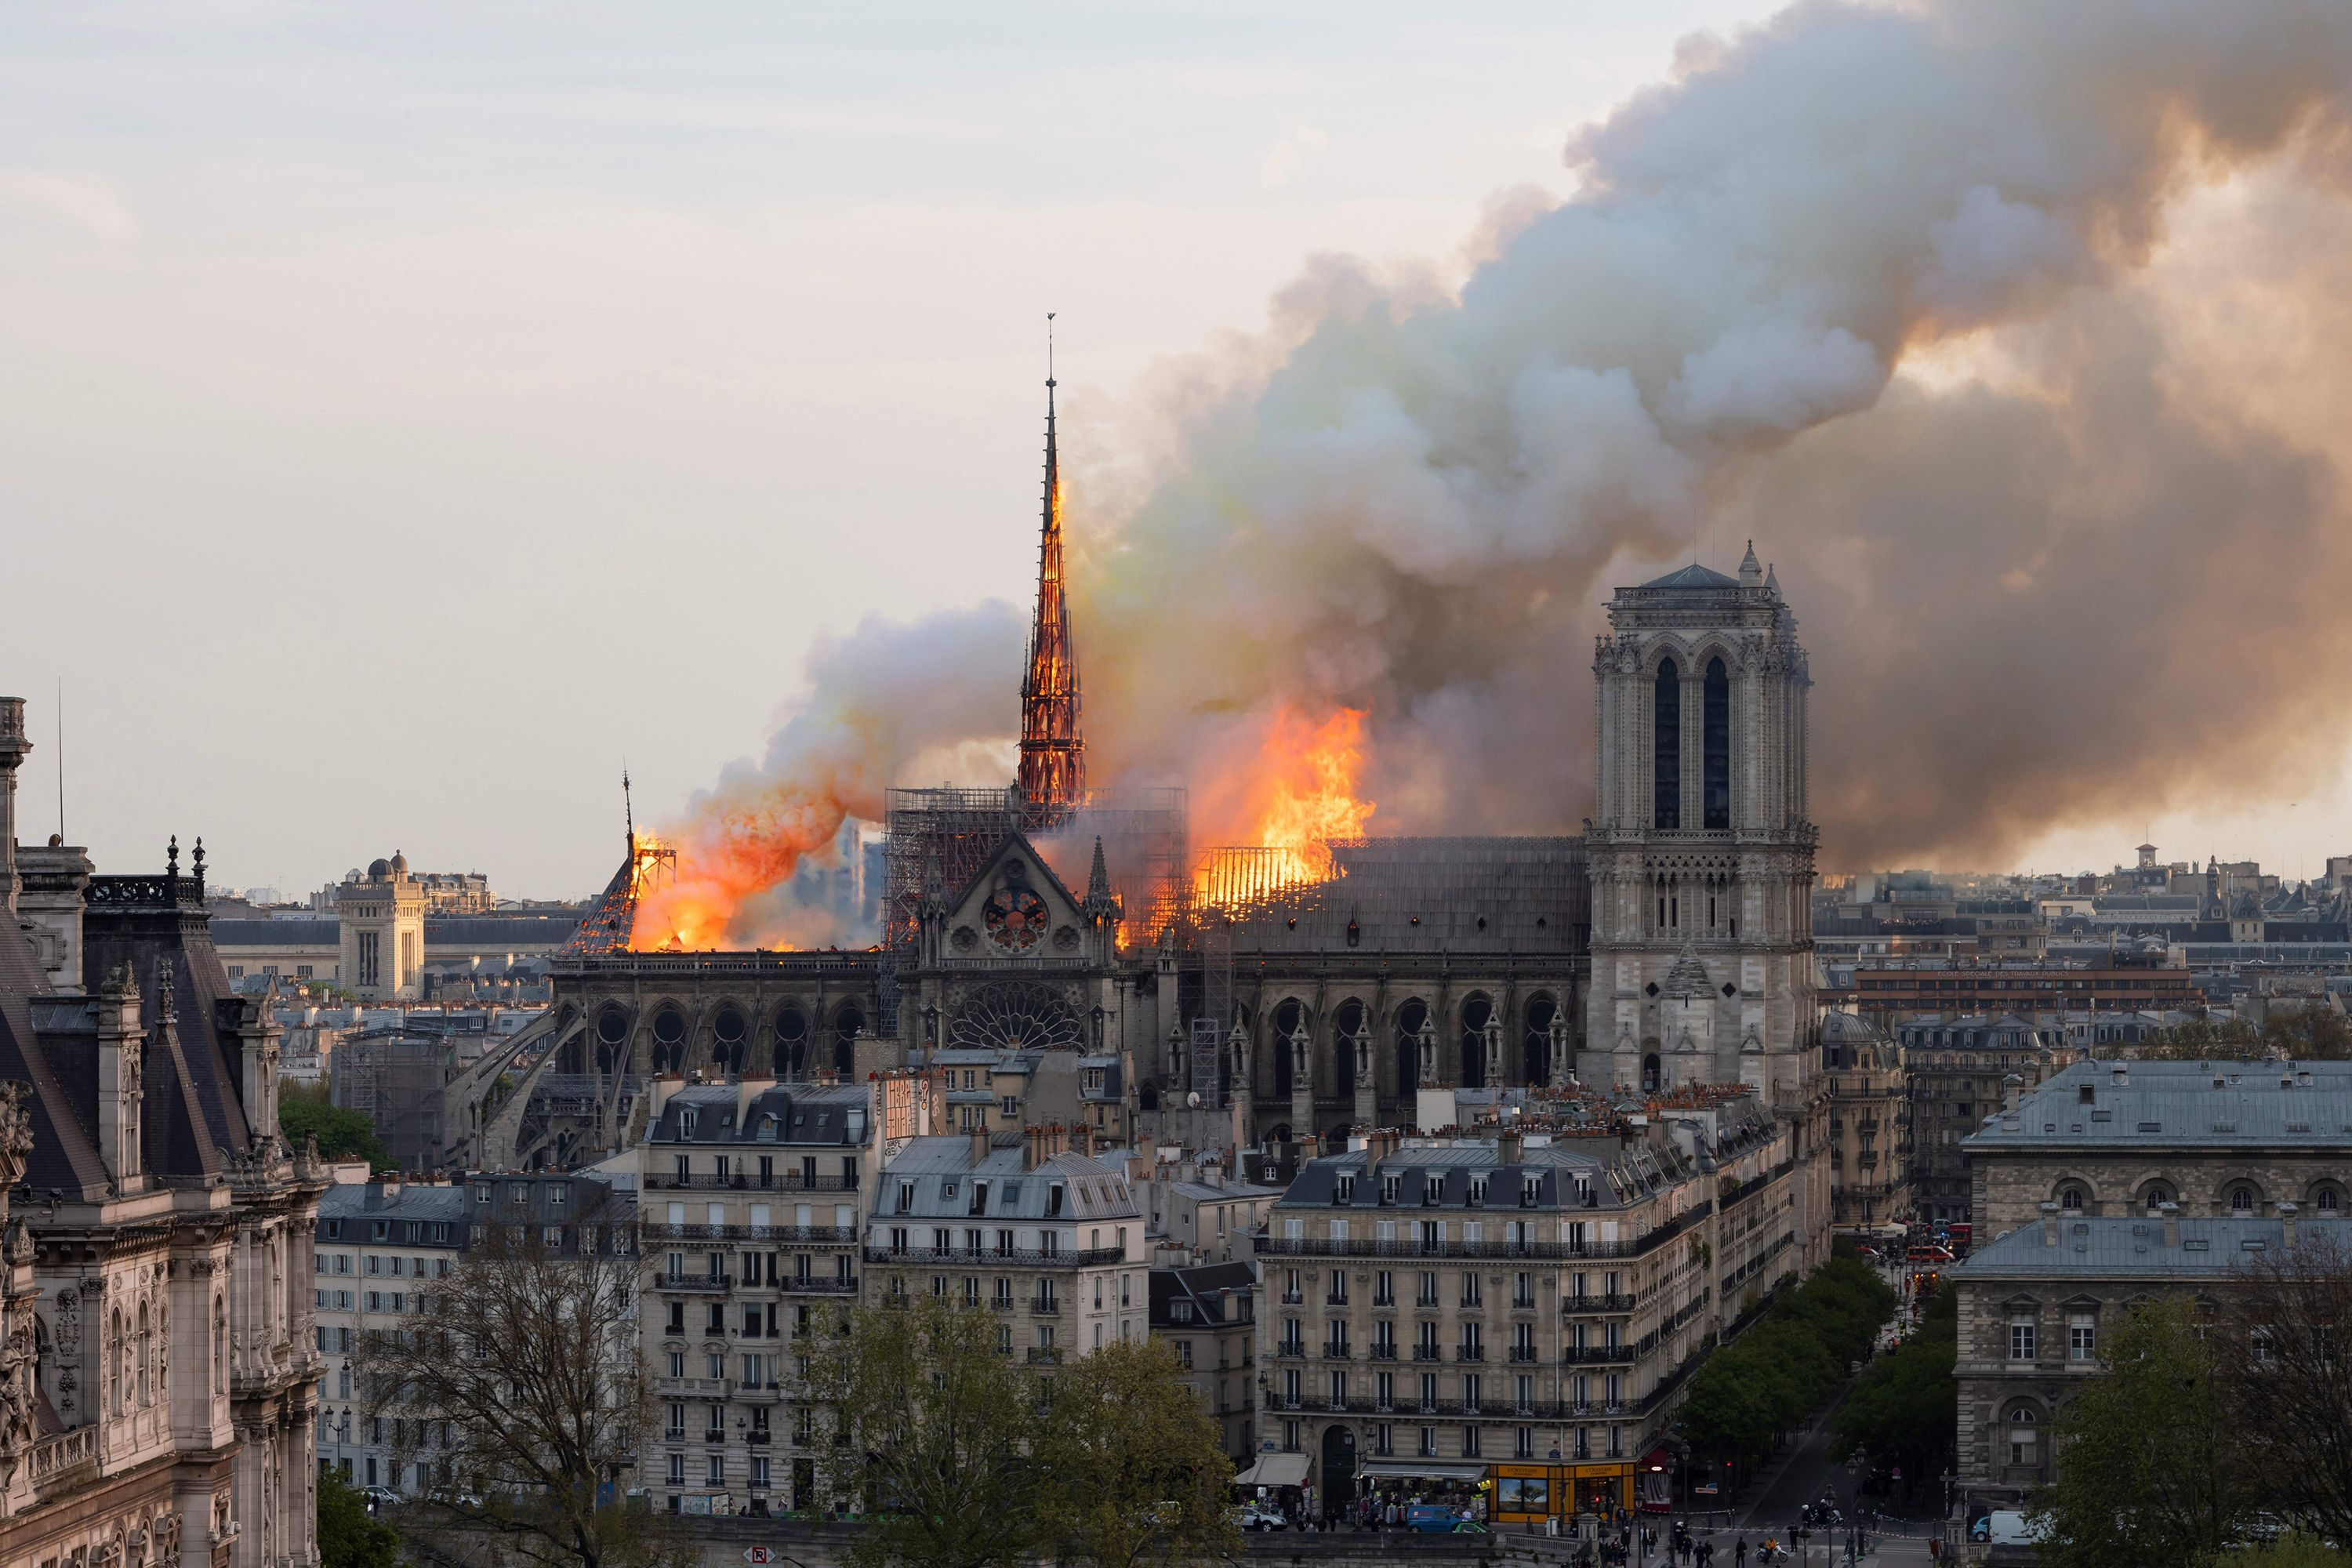 International competition launched to find architect to rebuild Notre Dame